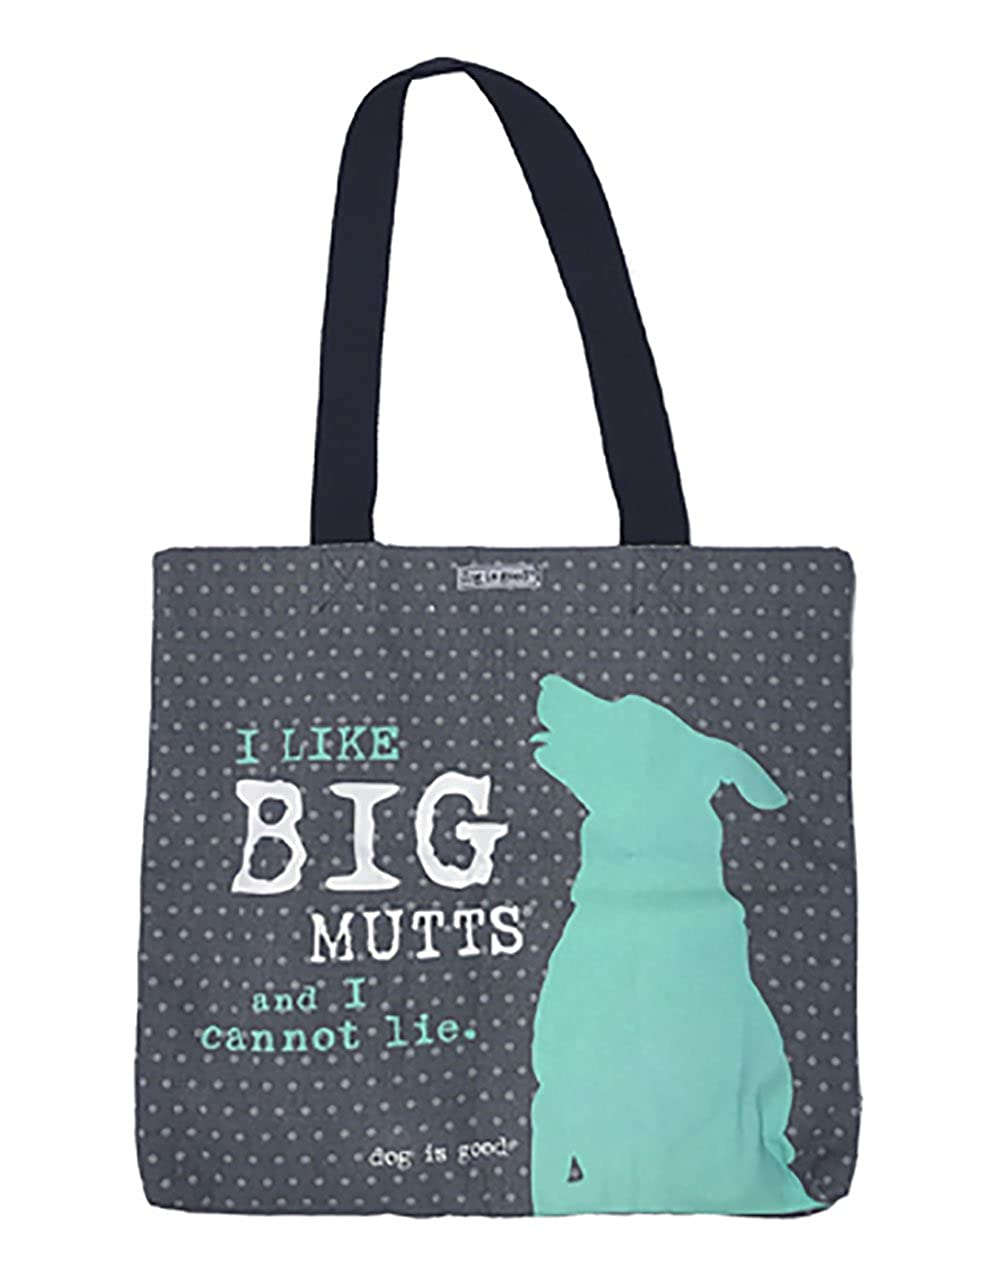 Dog is Good Tote Great Gift For Dog Lovers AAT56-CN-2